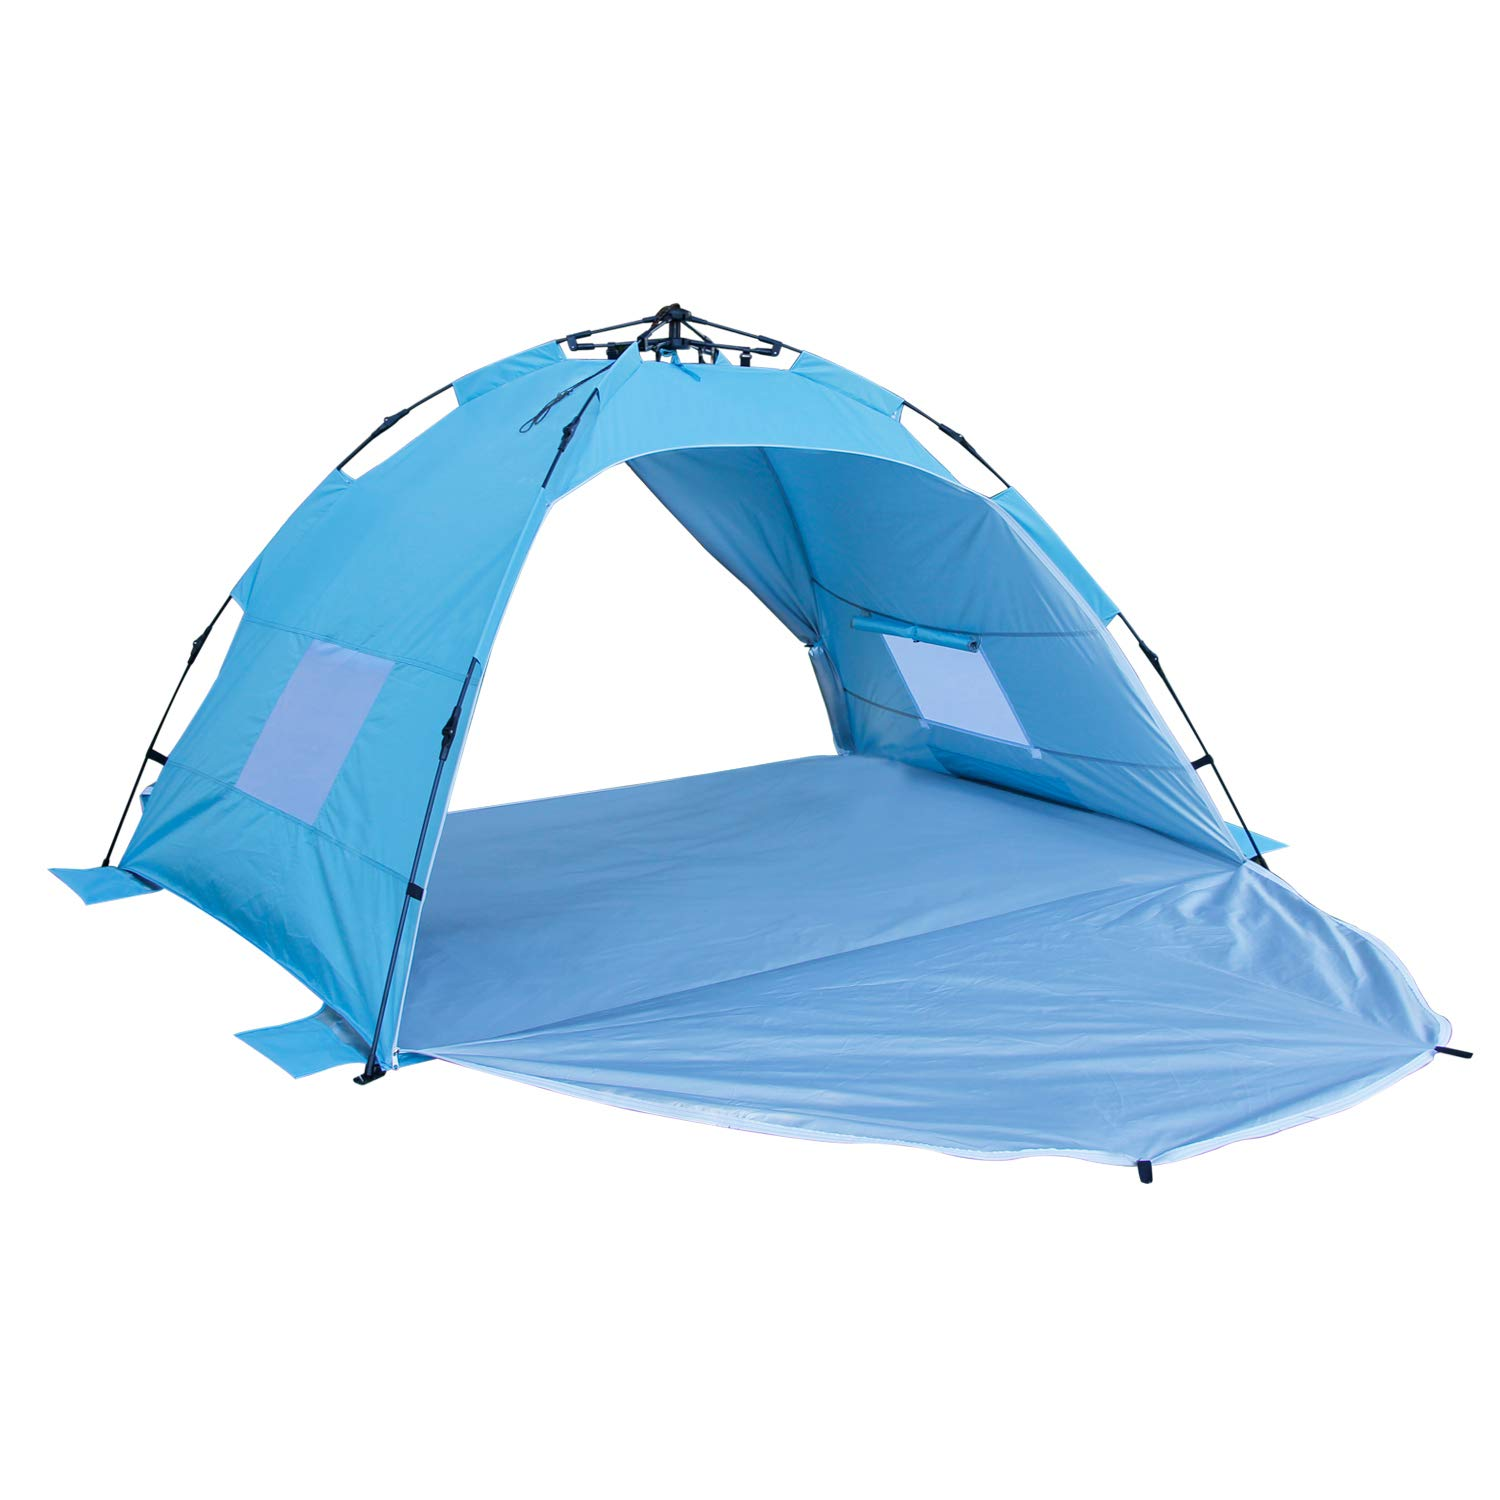 Sun-shelter Beach Tent Camping Tent with UV Protection Beach Shade Automatic Tent 2 or 3 Person for Outdoor Activities by Sun-shelter